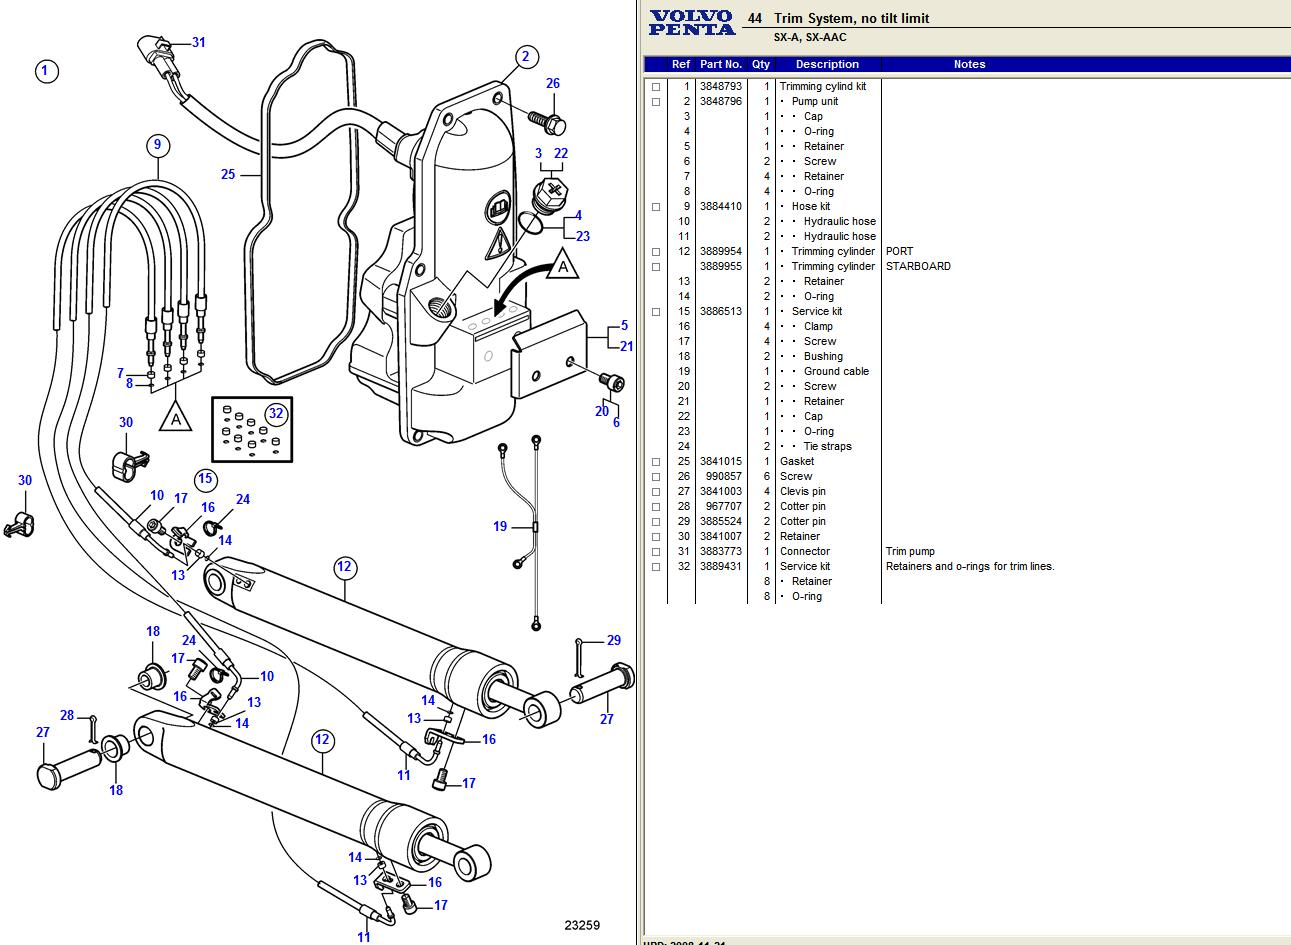 Volvo Penta Dps Trim Pump Wiring Diagram on